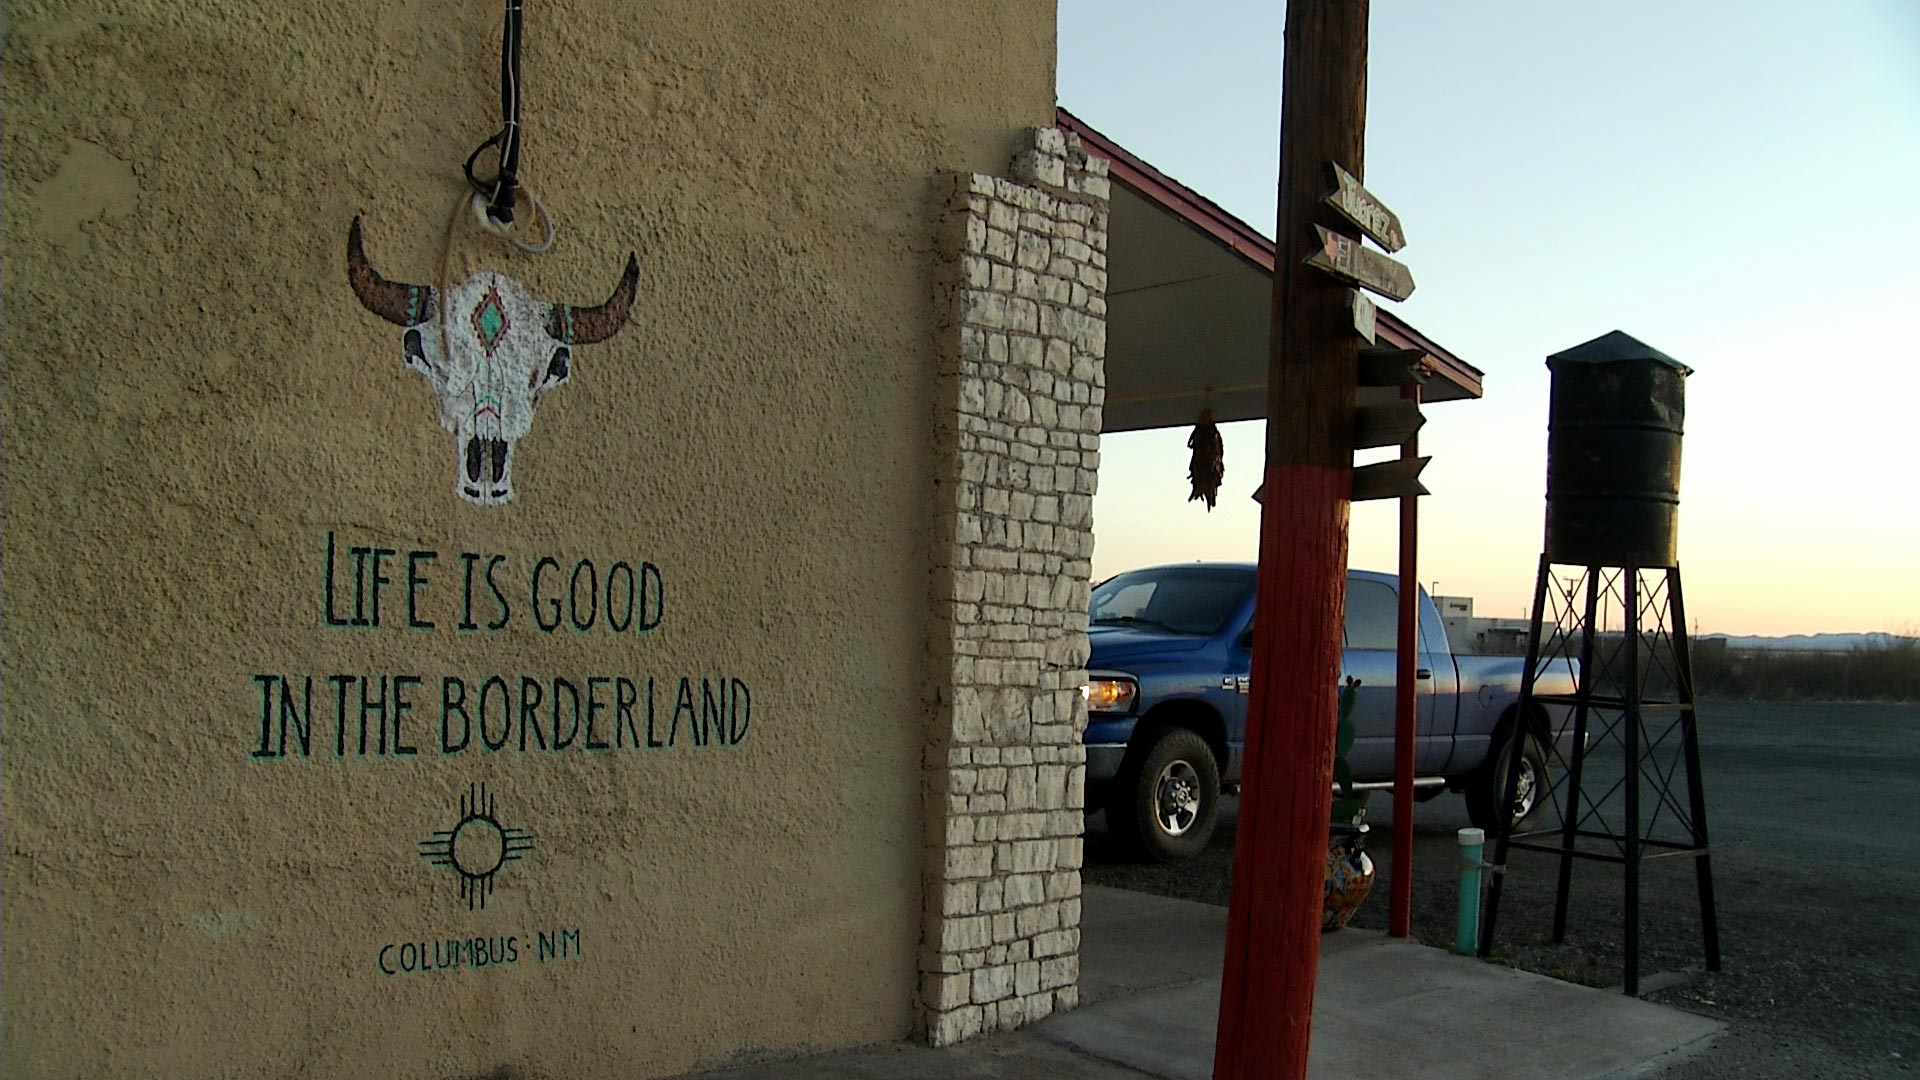 A mural outside the Borderland Cafe in Columbus, New Mexico on February 12, 2019.